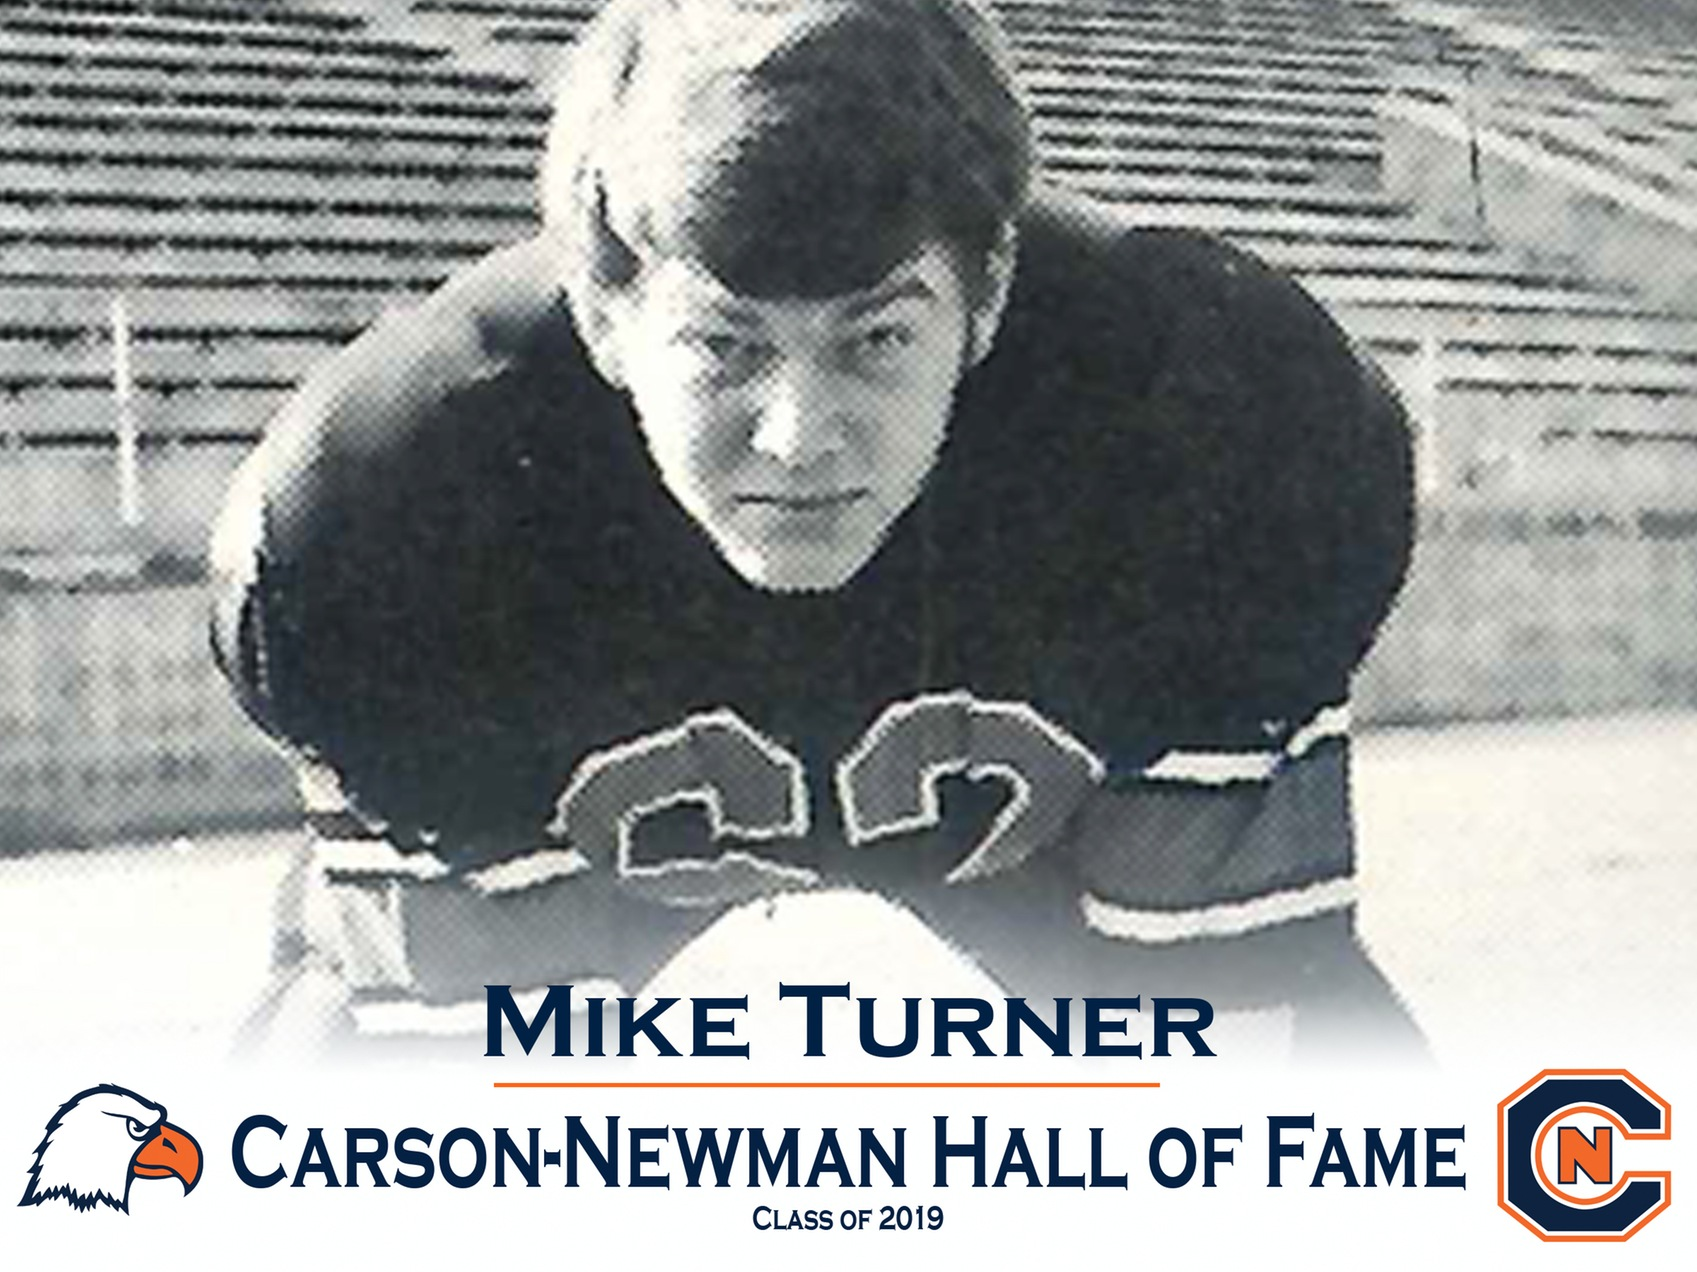 Six headed into Carson-Newman Athletics Hall of Fame Saturday